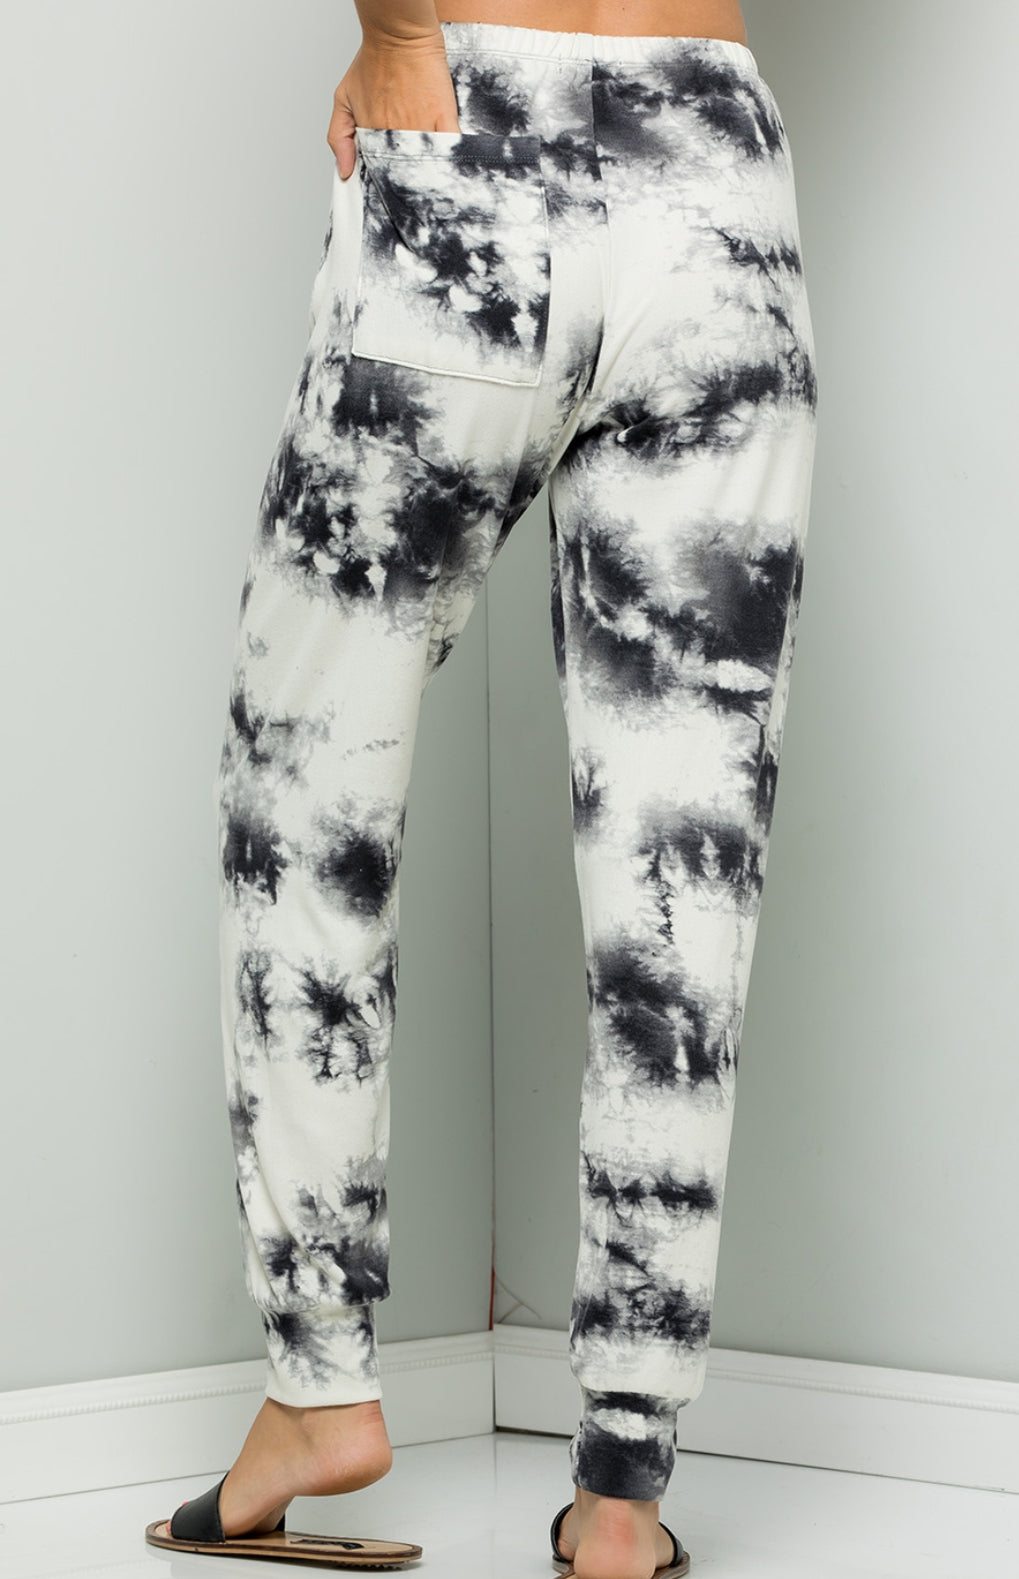 Black and White Tie Dye Lounge Pants